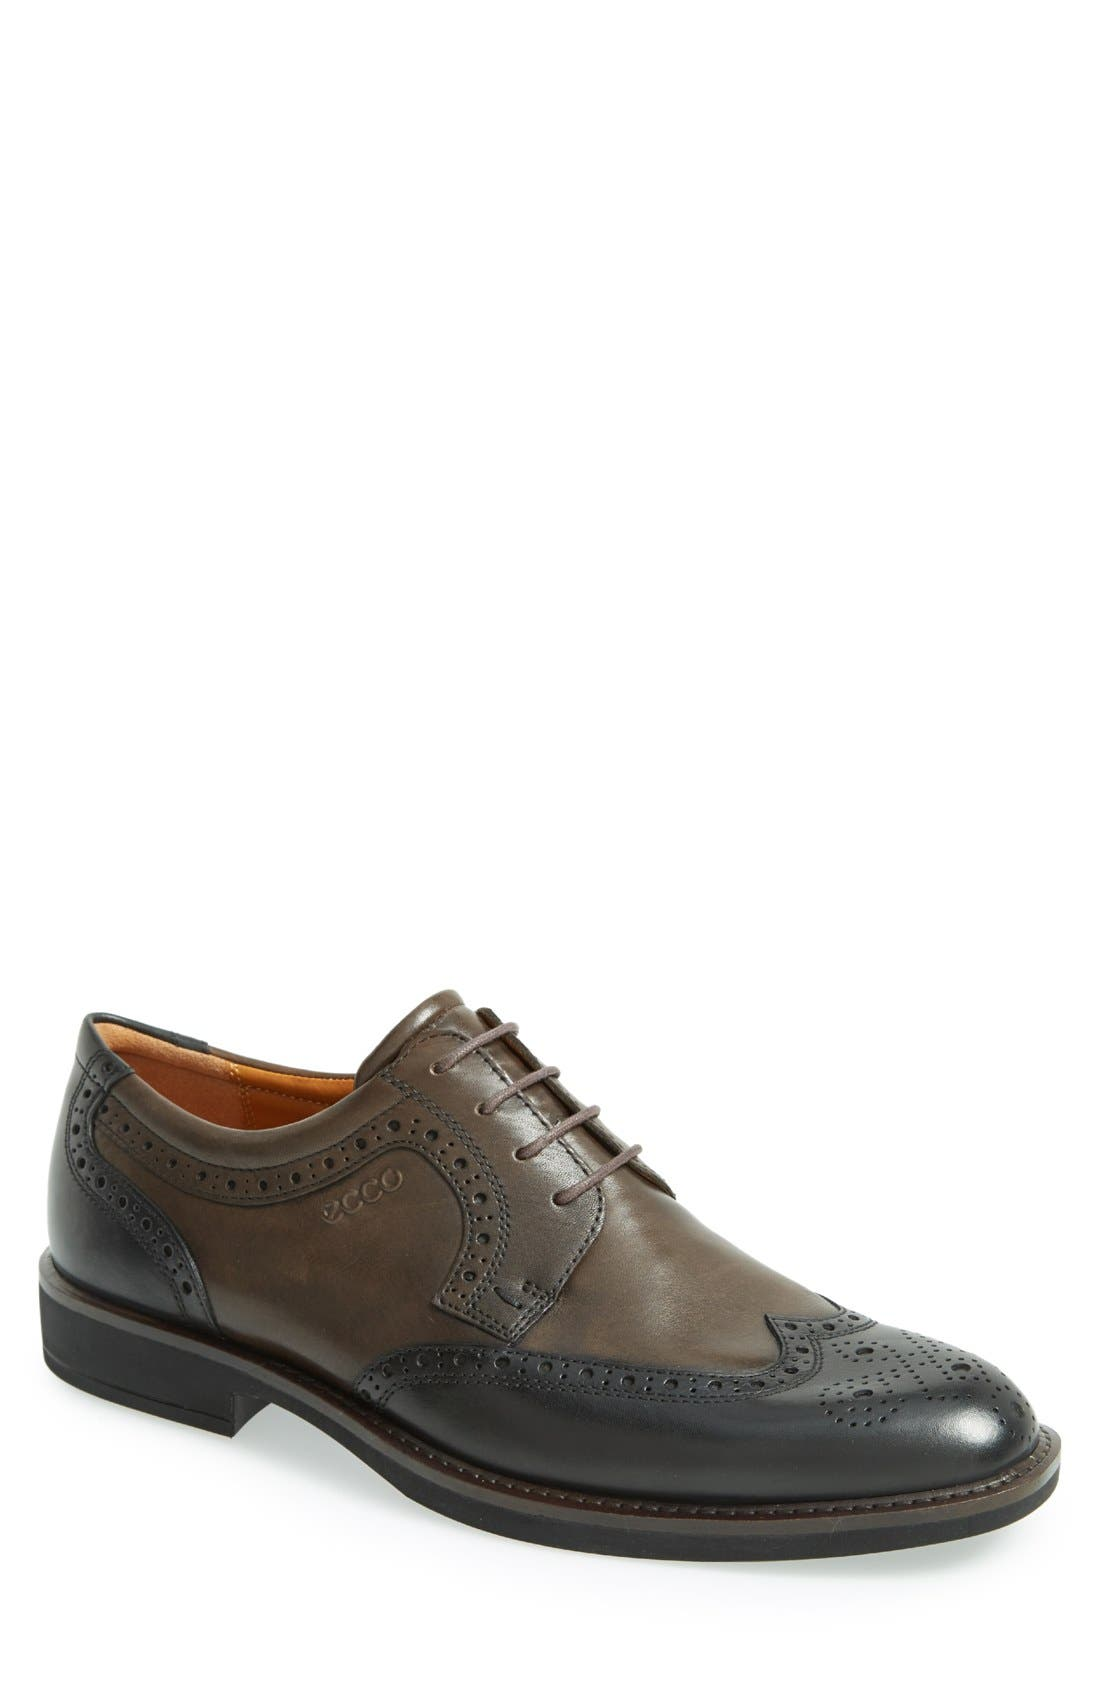 Main Image - ECCO 'Biarritz' Oxford (Online Only)